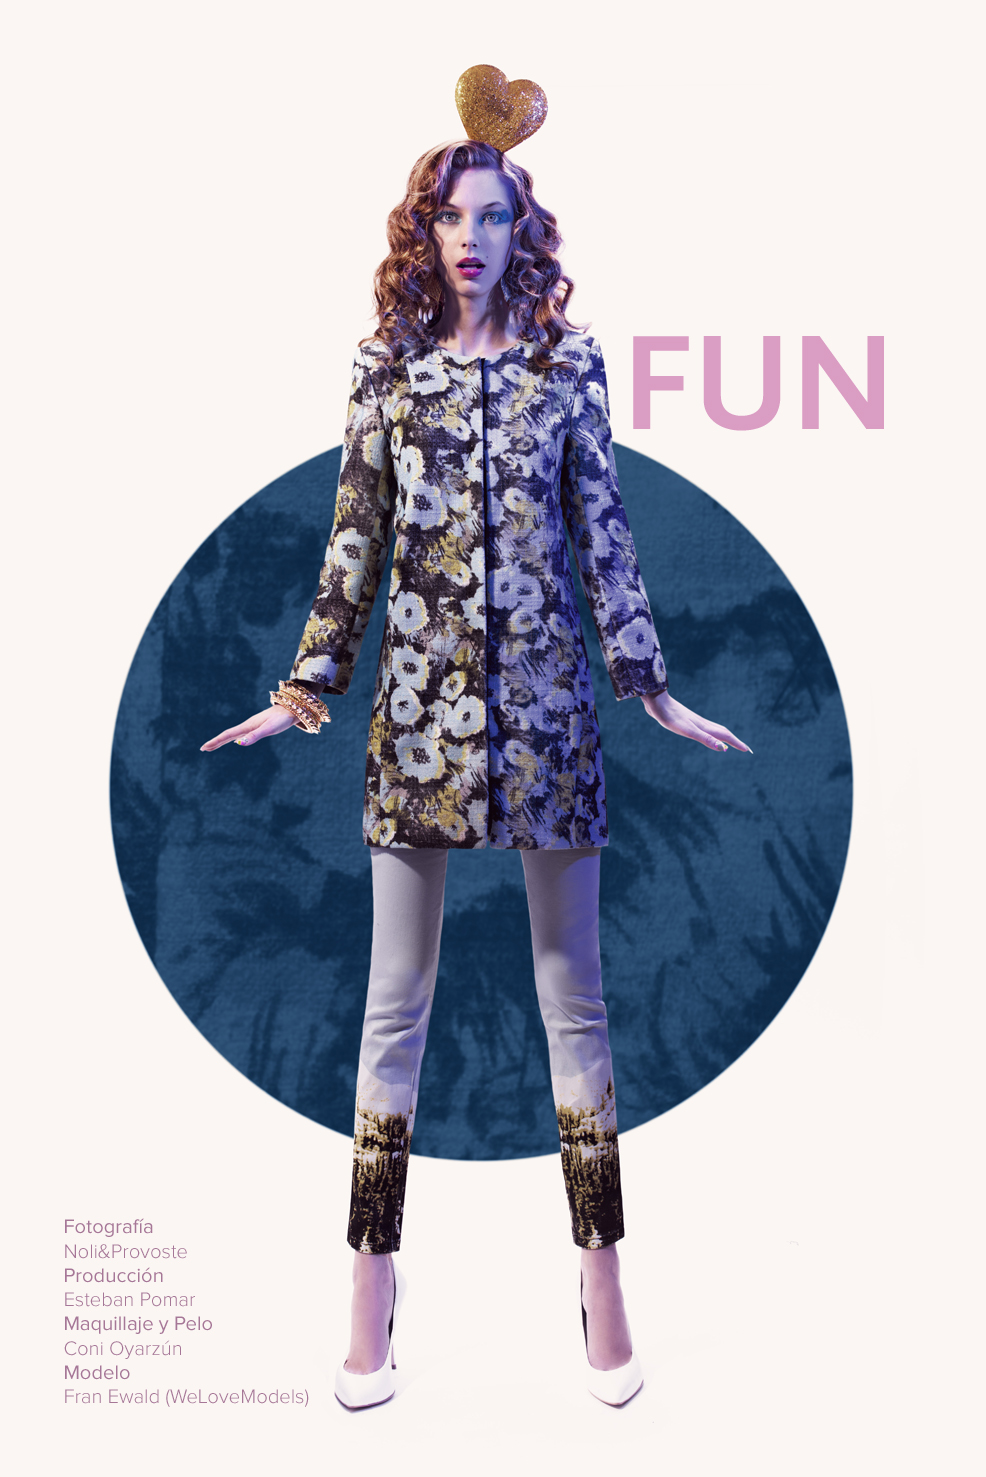 Editoriales Viste La Calle: FUN